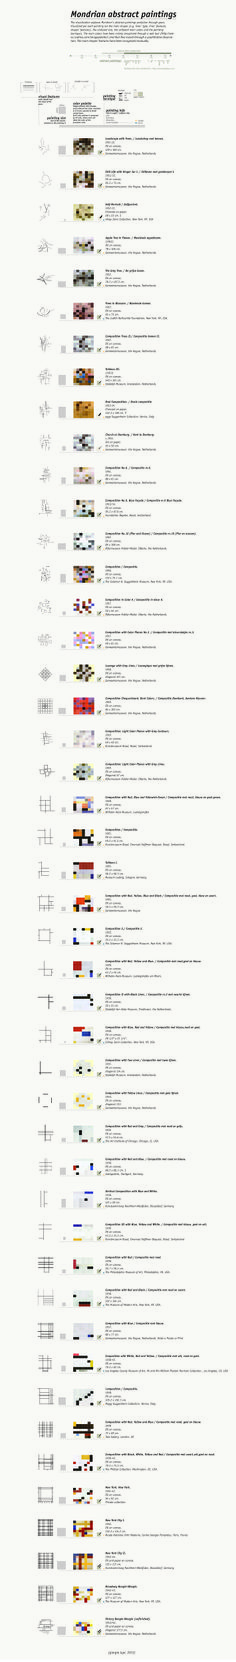 Mondrian Abstract paintings.This is a very personal and qualitative visual exploration of Mondrian abstract paitings' evolution through years, with no particular purpose or aim. Visualized per each painting are the main shapes (e.g. lines' type, lines' features, shapes' features), the artboard size, the artboard main colors and the painting tecnique). http://giorgialupi.net/2013/11/27/mondrian-abstract-paintings/